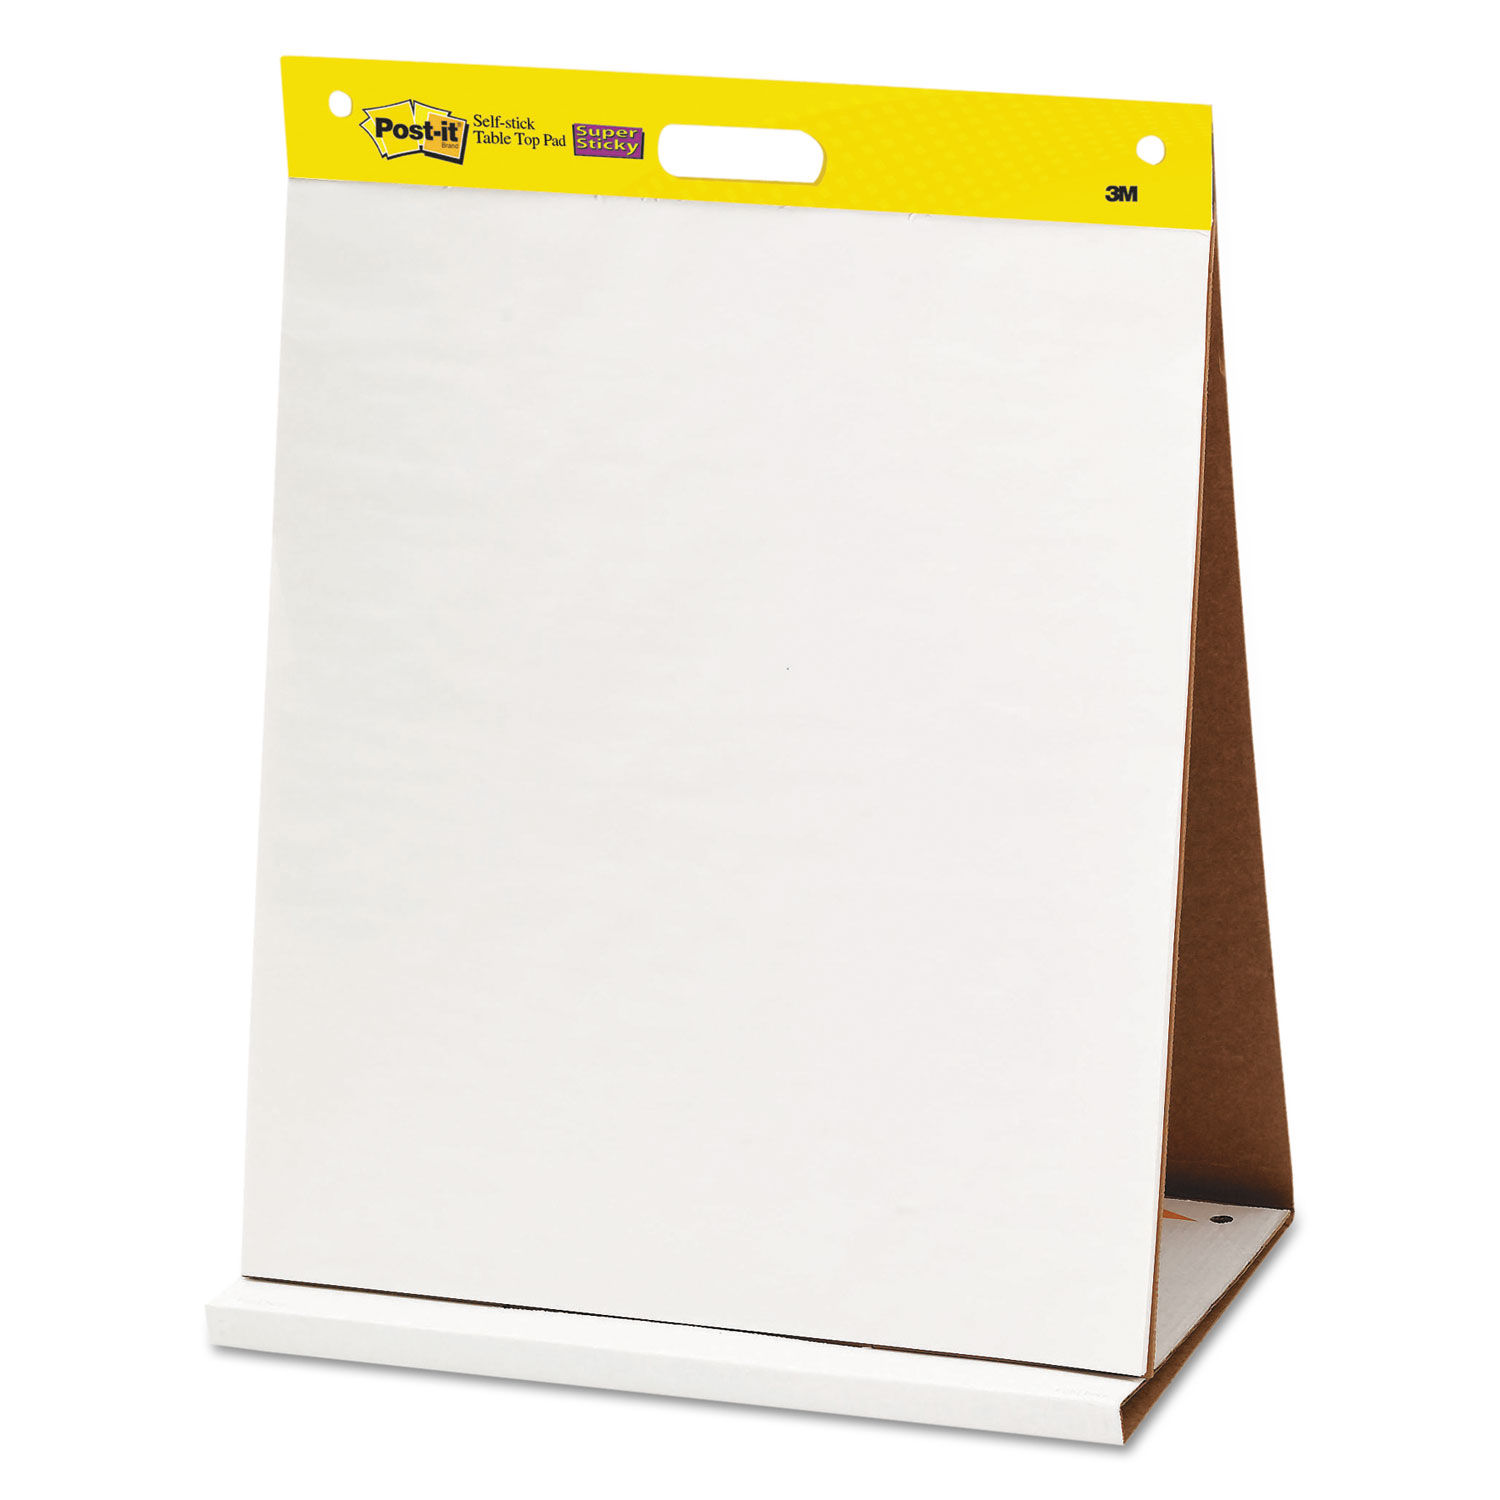 3 Pads Post-it Super Sticky Portable Tabletop Easel Pad 20 Sheets//Pad 20x23 Inches